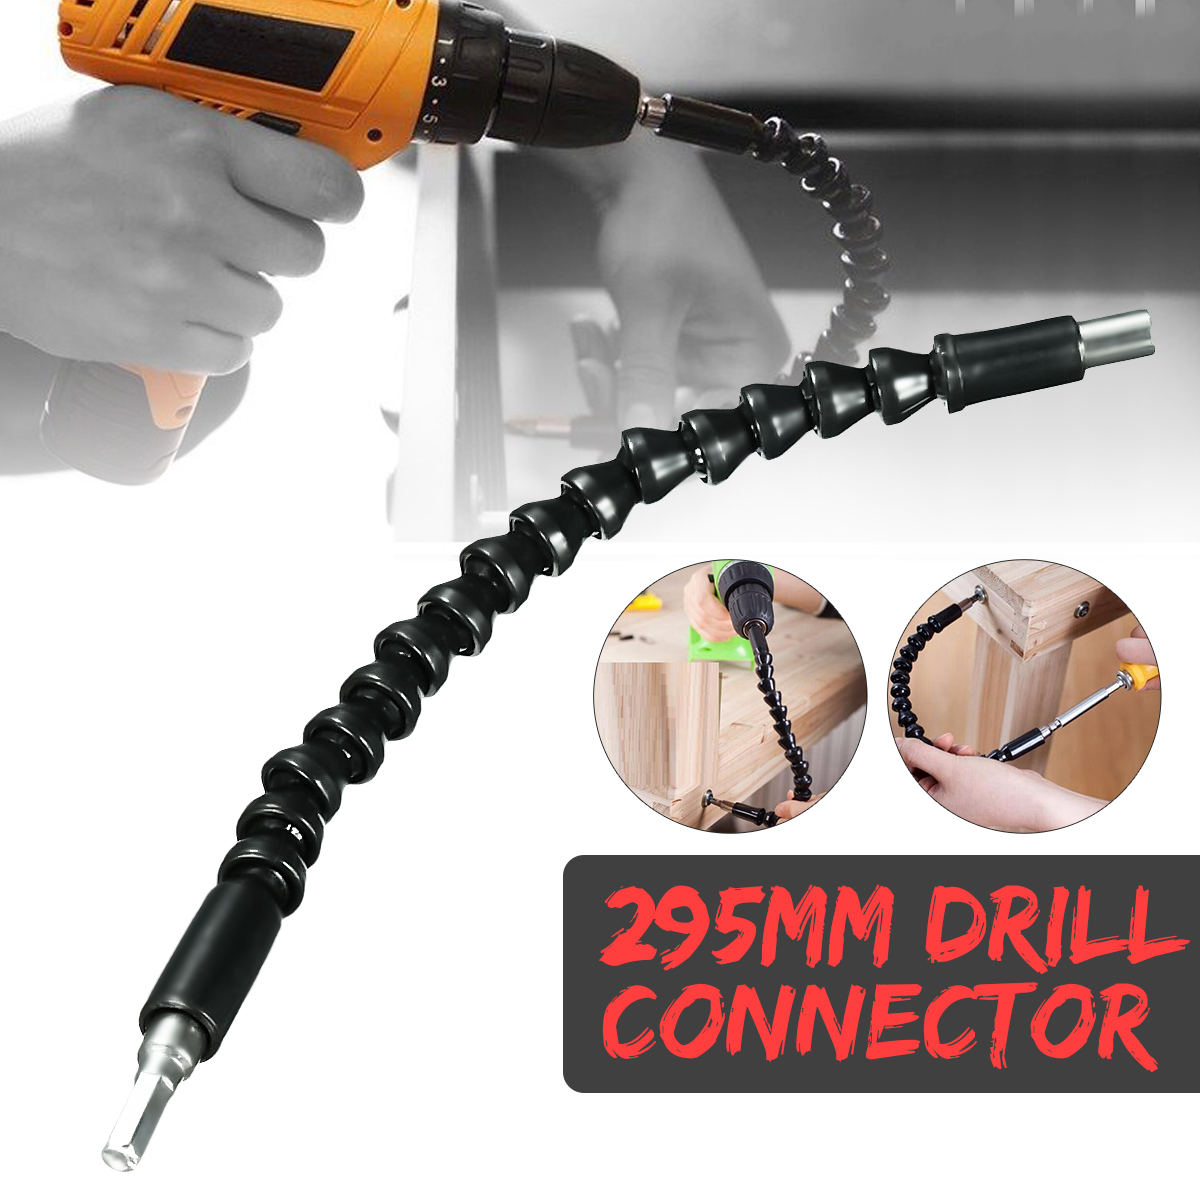 295MM Flexible Shaft Extension Screwdriver Drill Bit Holder Link for Electronic Drill